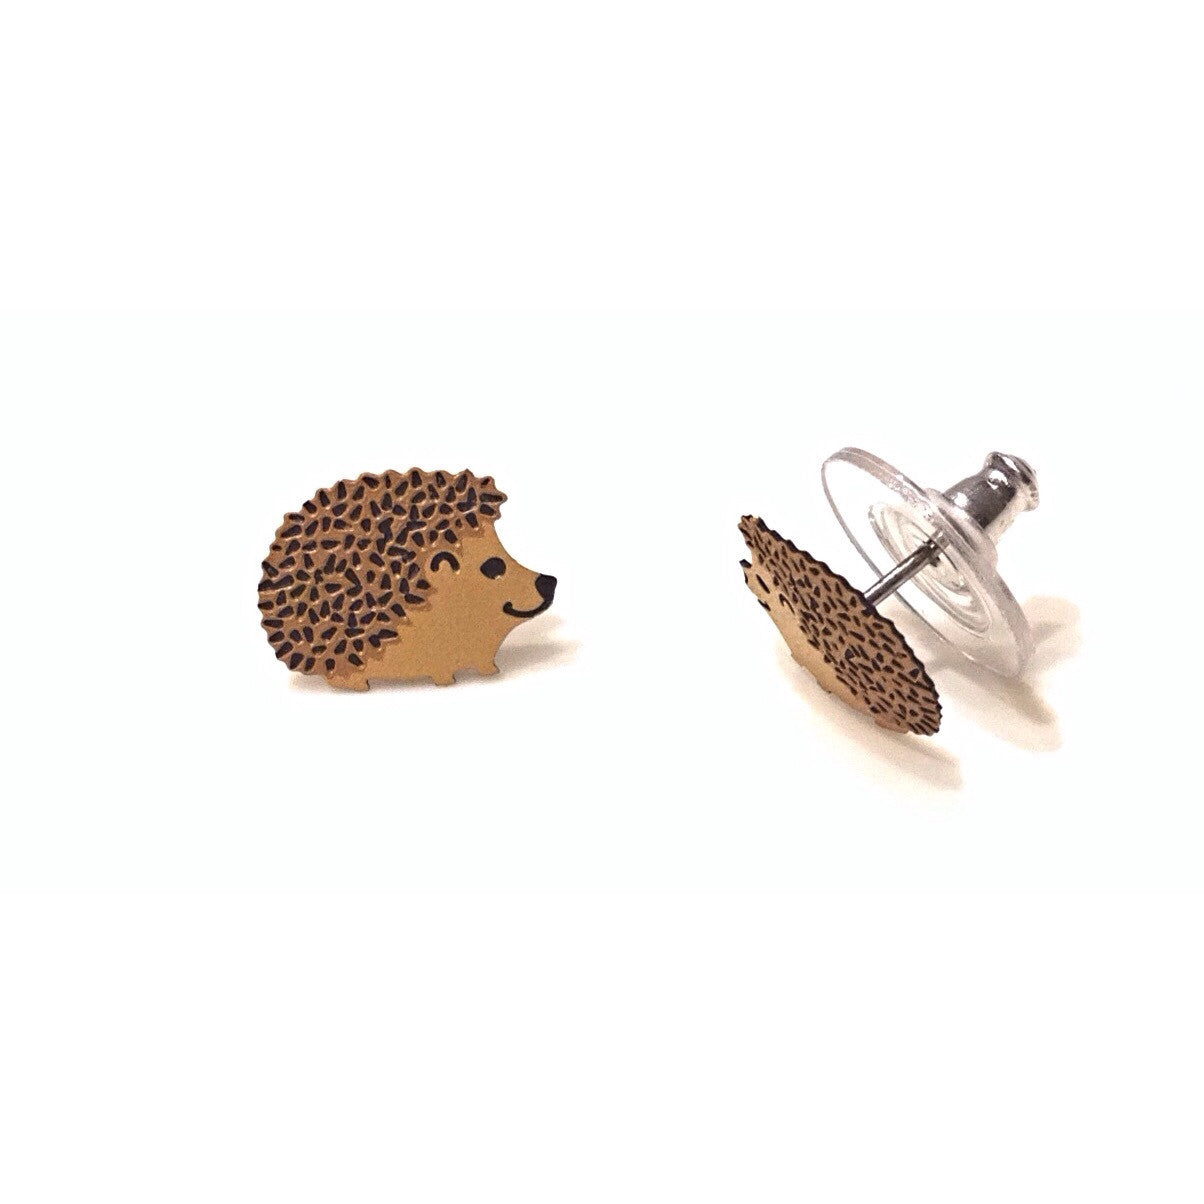 Hedgehog Posts By Sienna Sky, $14 | Sterling Silver Stud Earrings | Light Years Jewelry